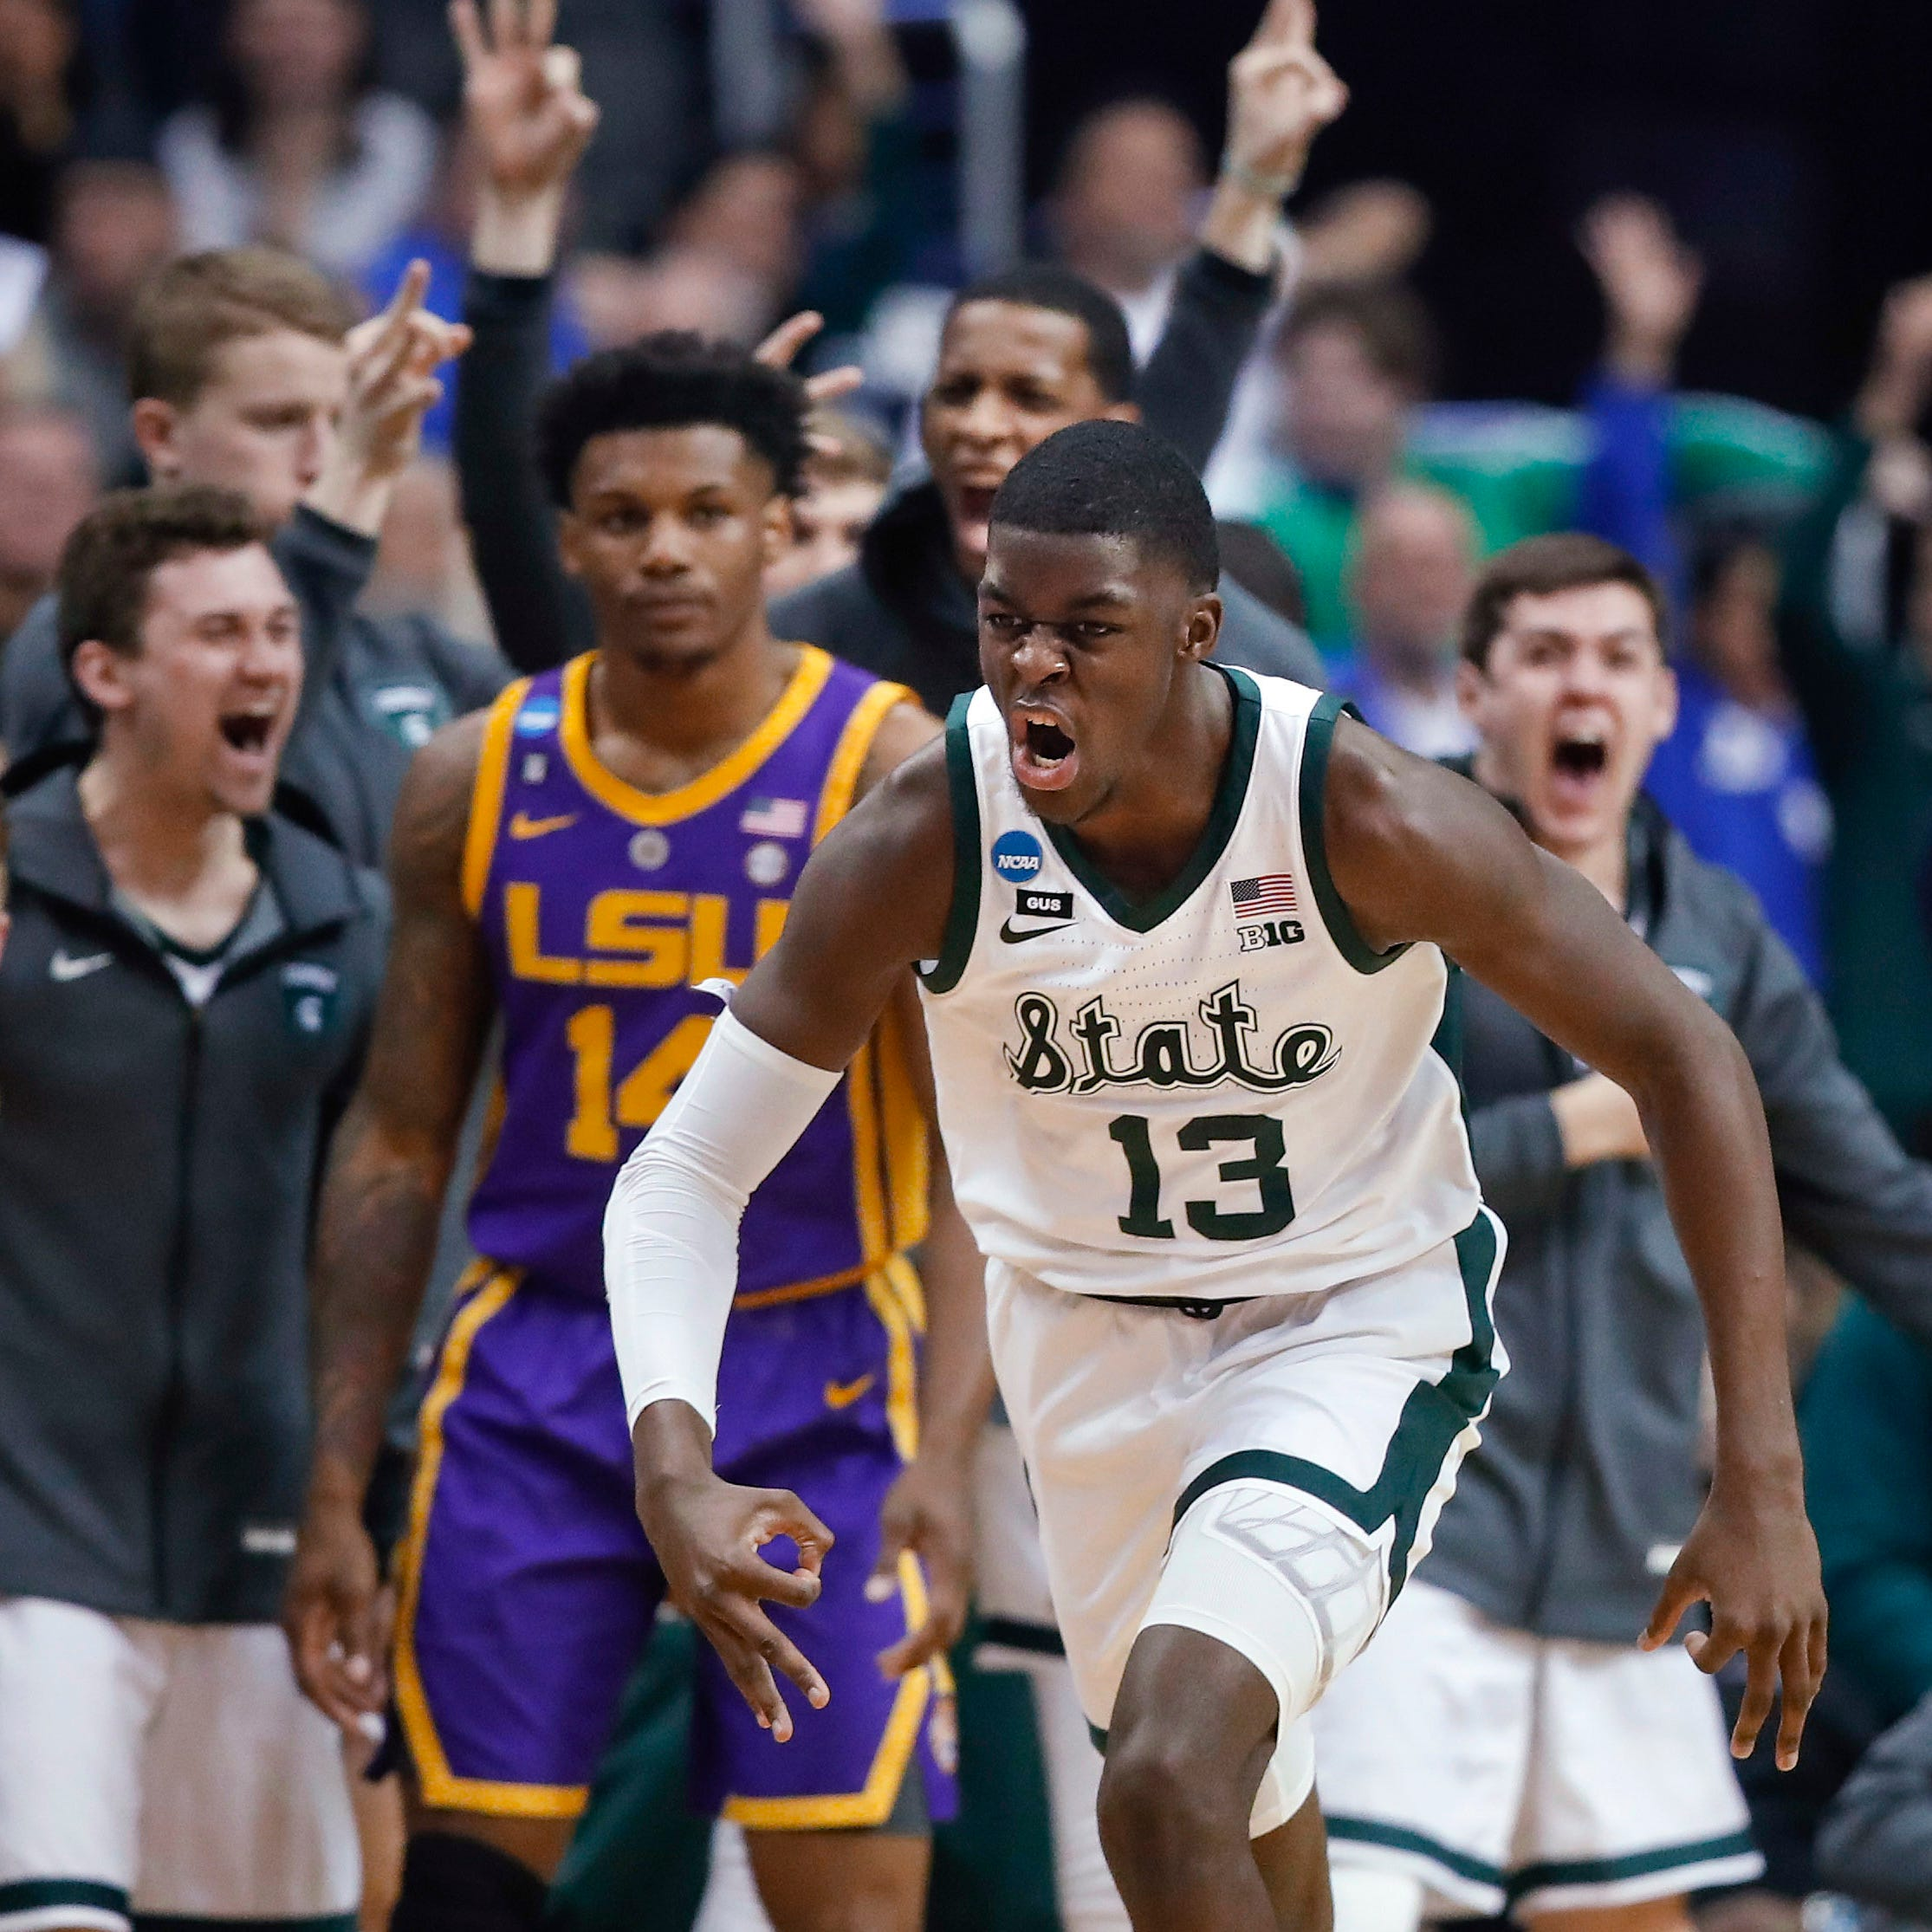 Fresh spin: Career nights from Henry, Brown help carry Michigan State into Elite Eight